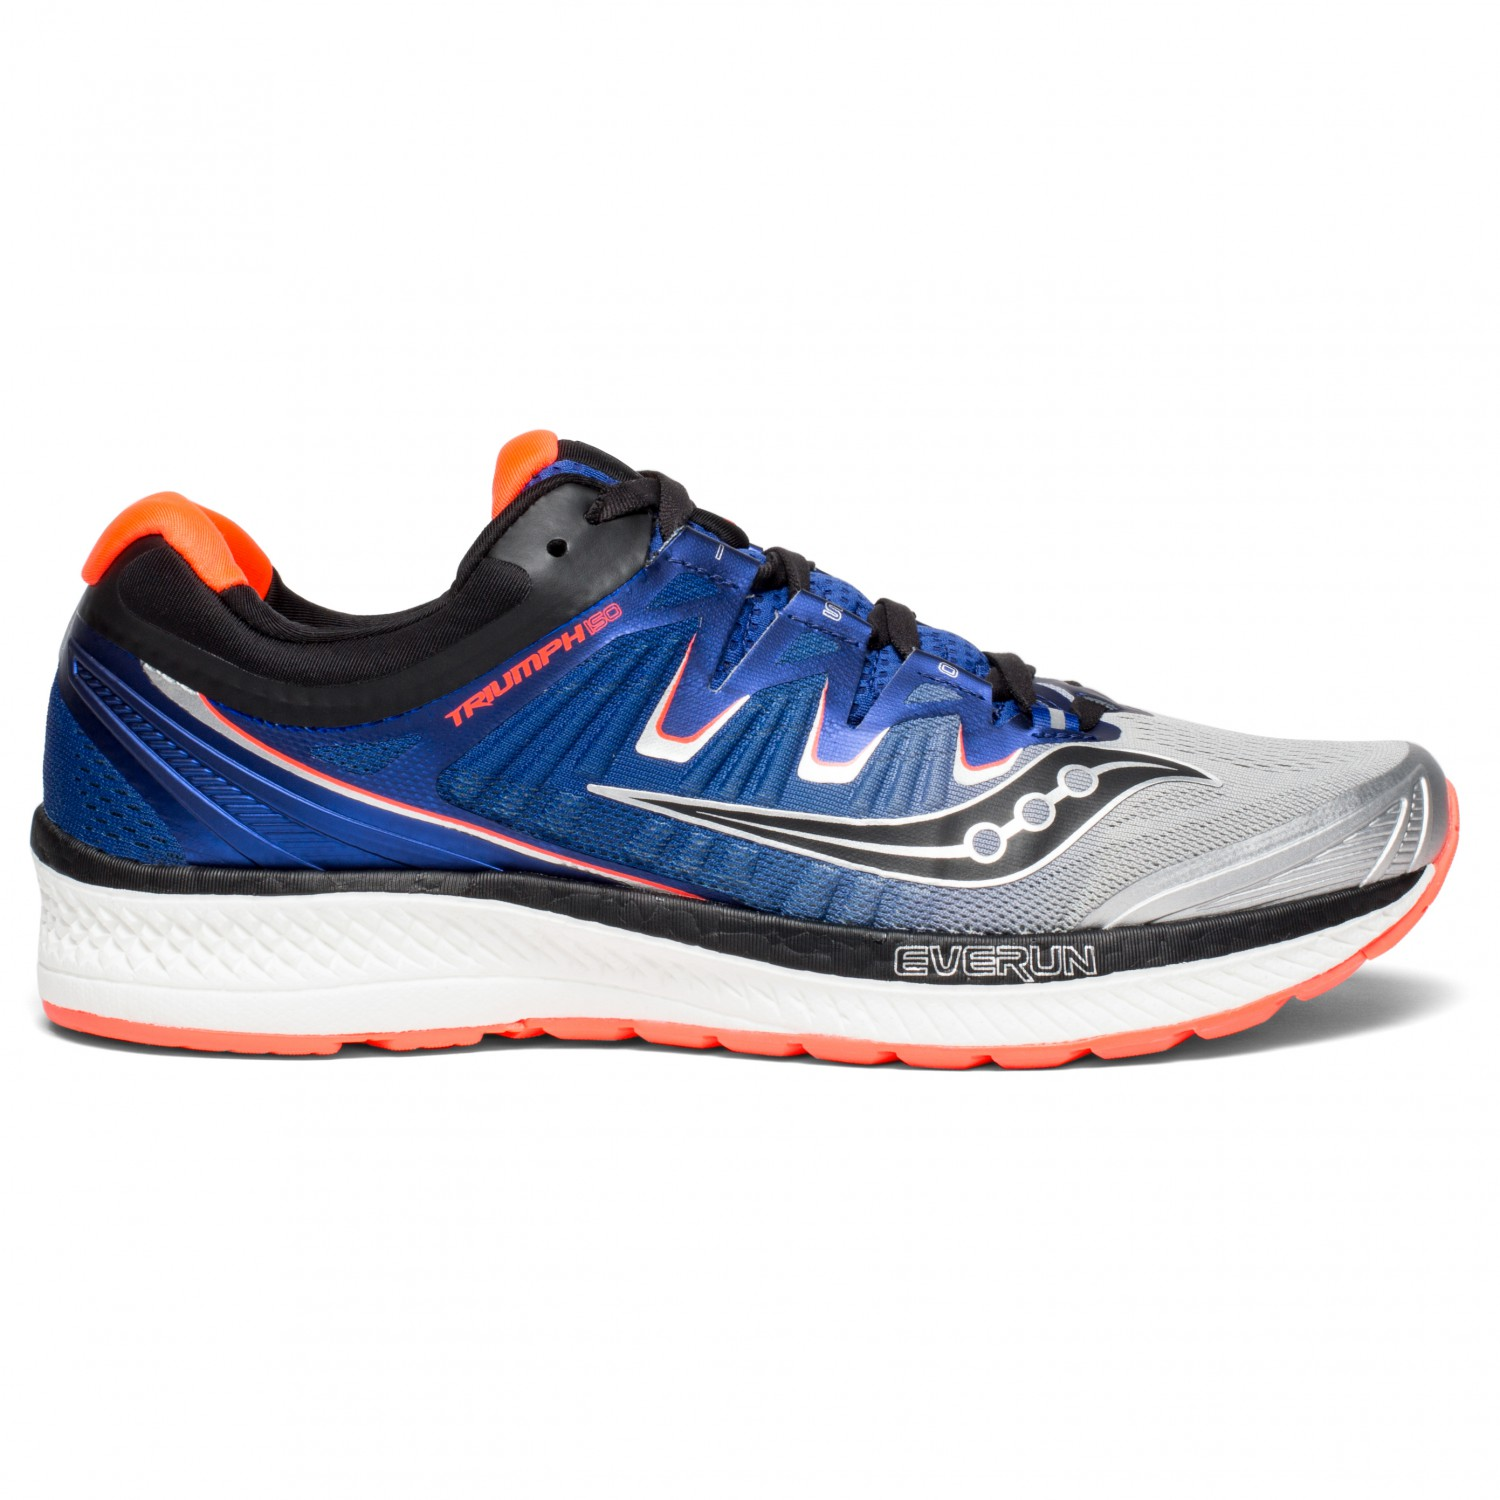 bdaa416571 Saucony - Triumph Iso 4 - Running shoes - Blue / Black / White | 7 (US)